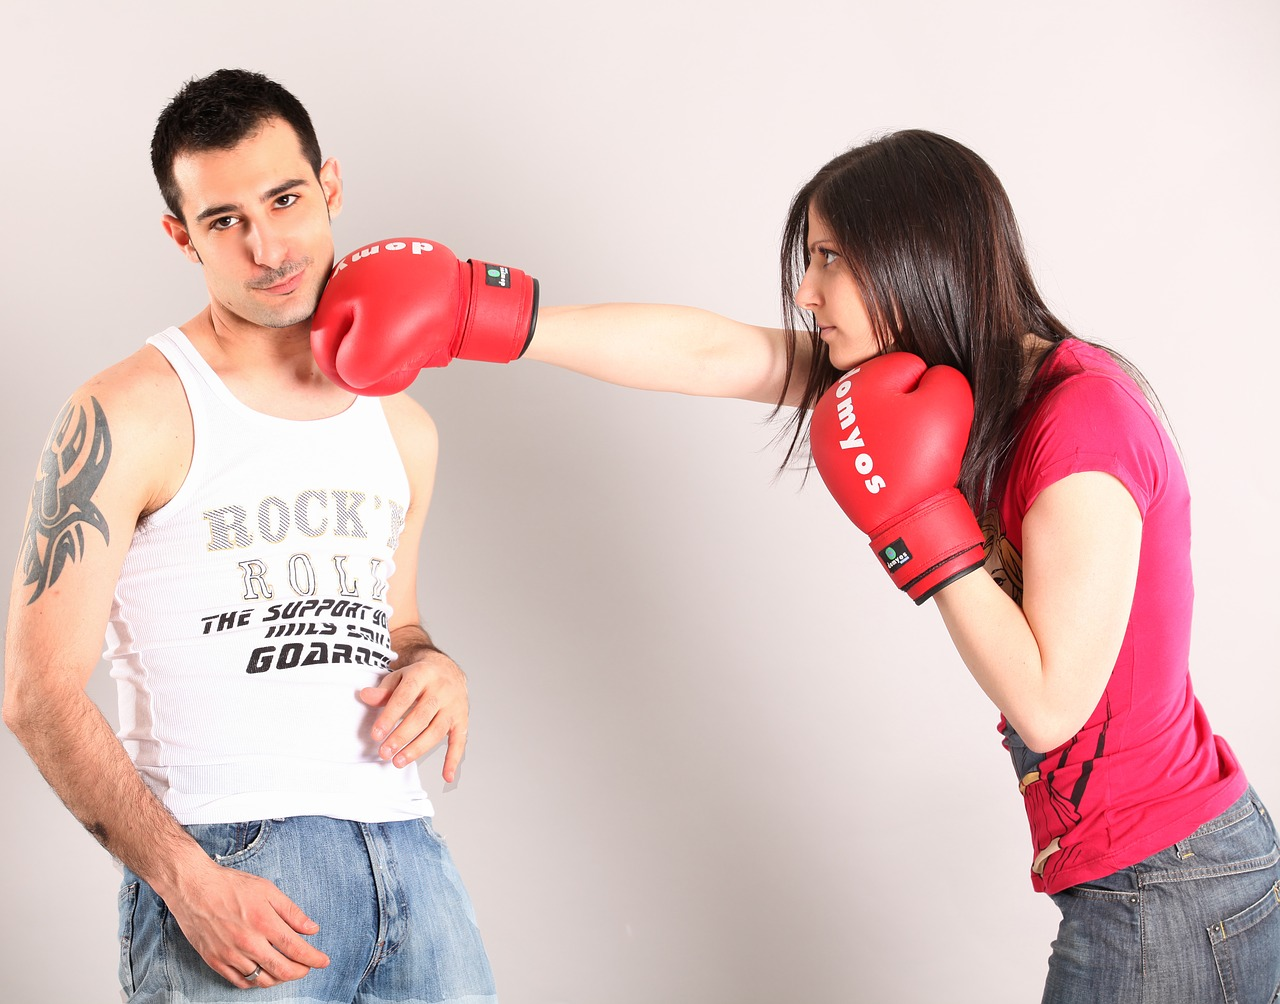 your reactions to fights in marriage decides whether it will affect your relationship